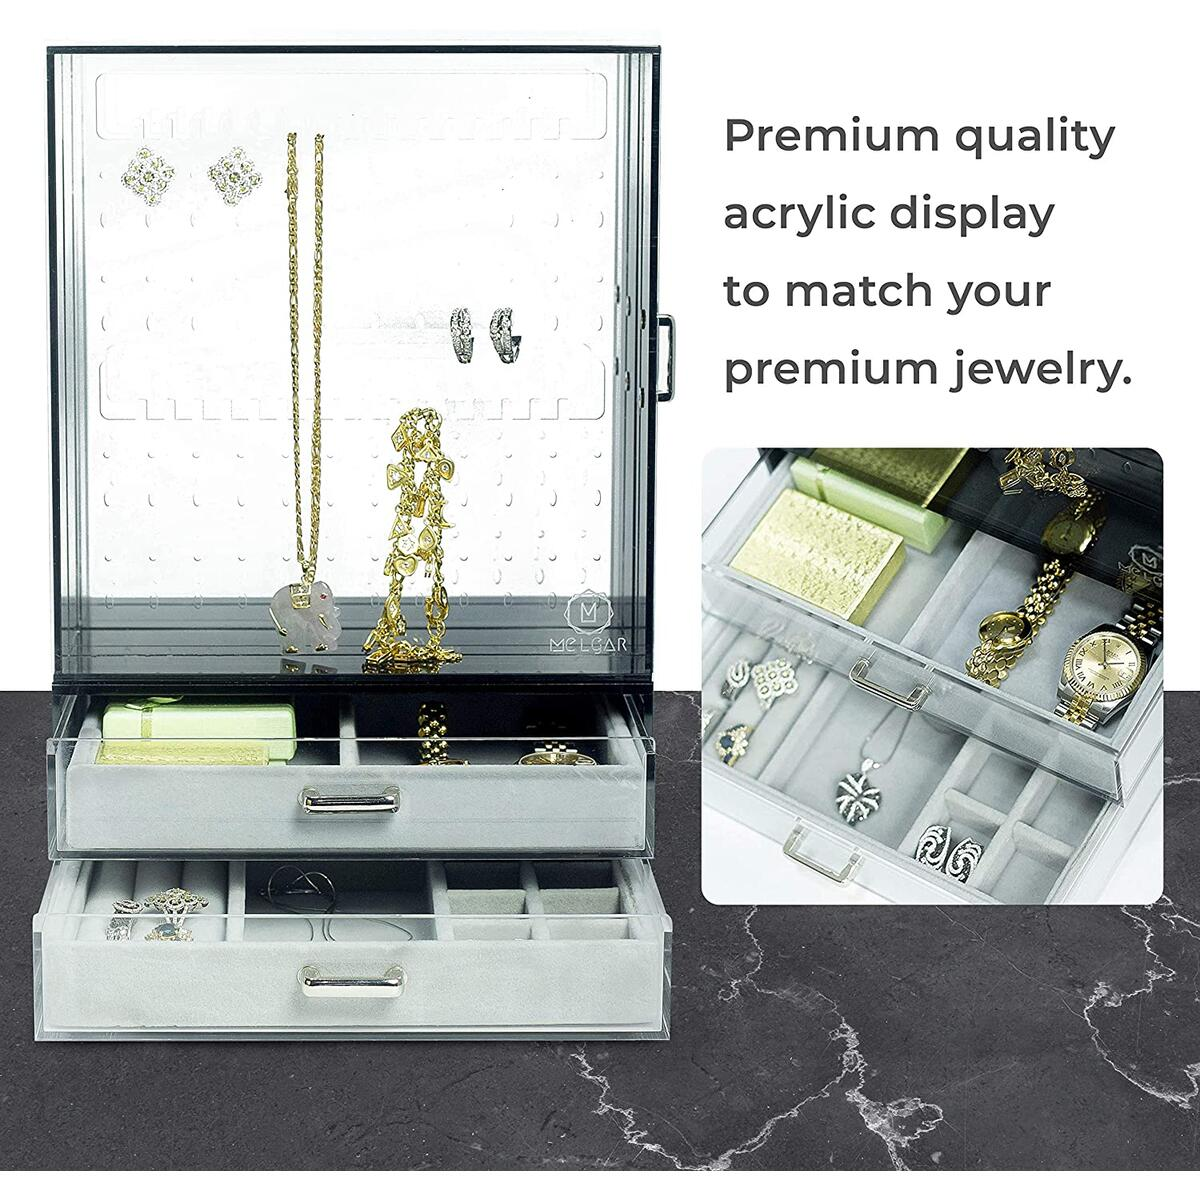 Melgar King Premium Earring Holder and Jewelry Organizer - Jewelry Storage Display Stand with 3 Vertical and 2 Bottom Drawers | Great for Hanging Short Necklace, accessories | Clear Acrylic | Black